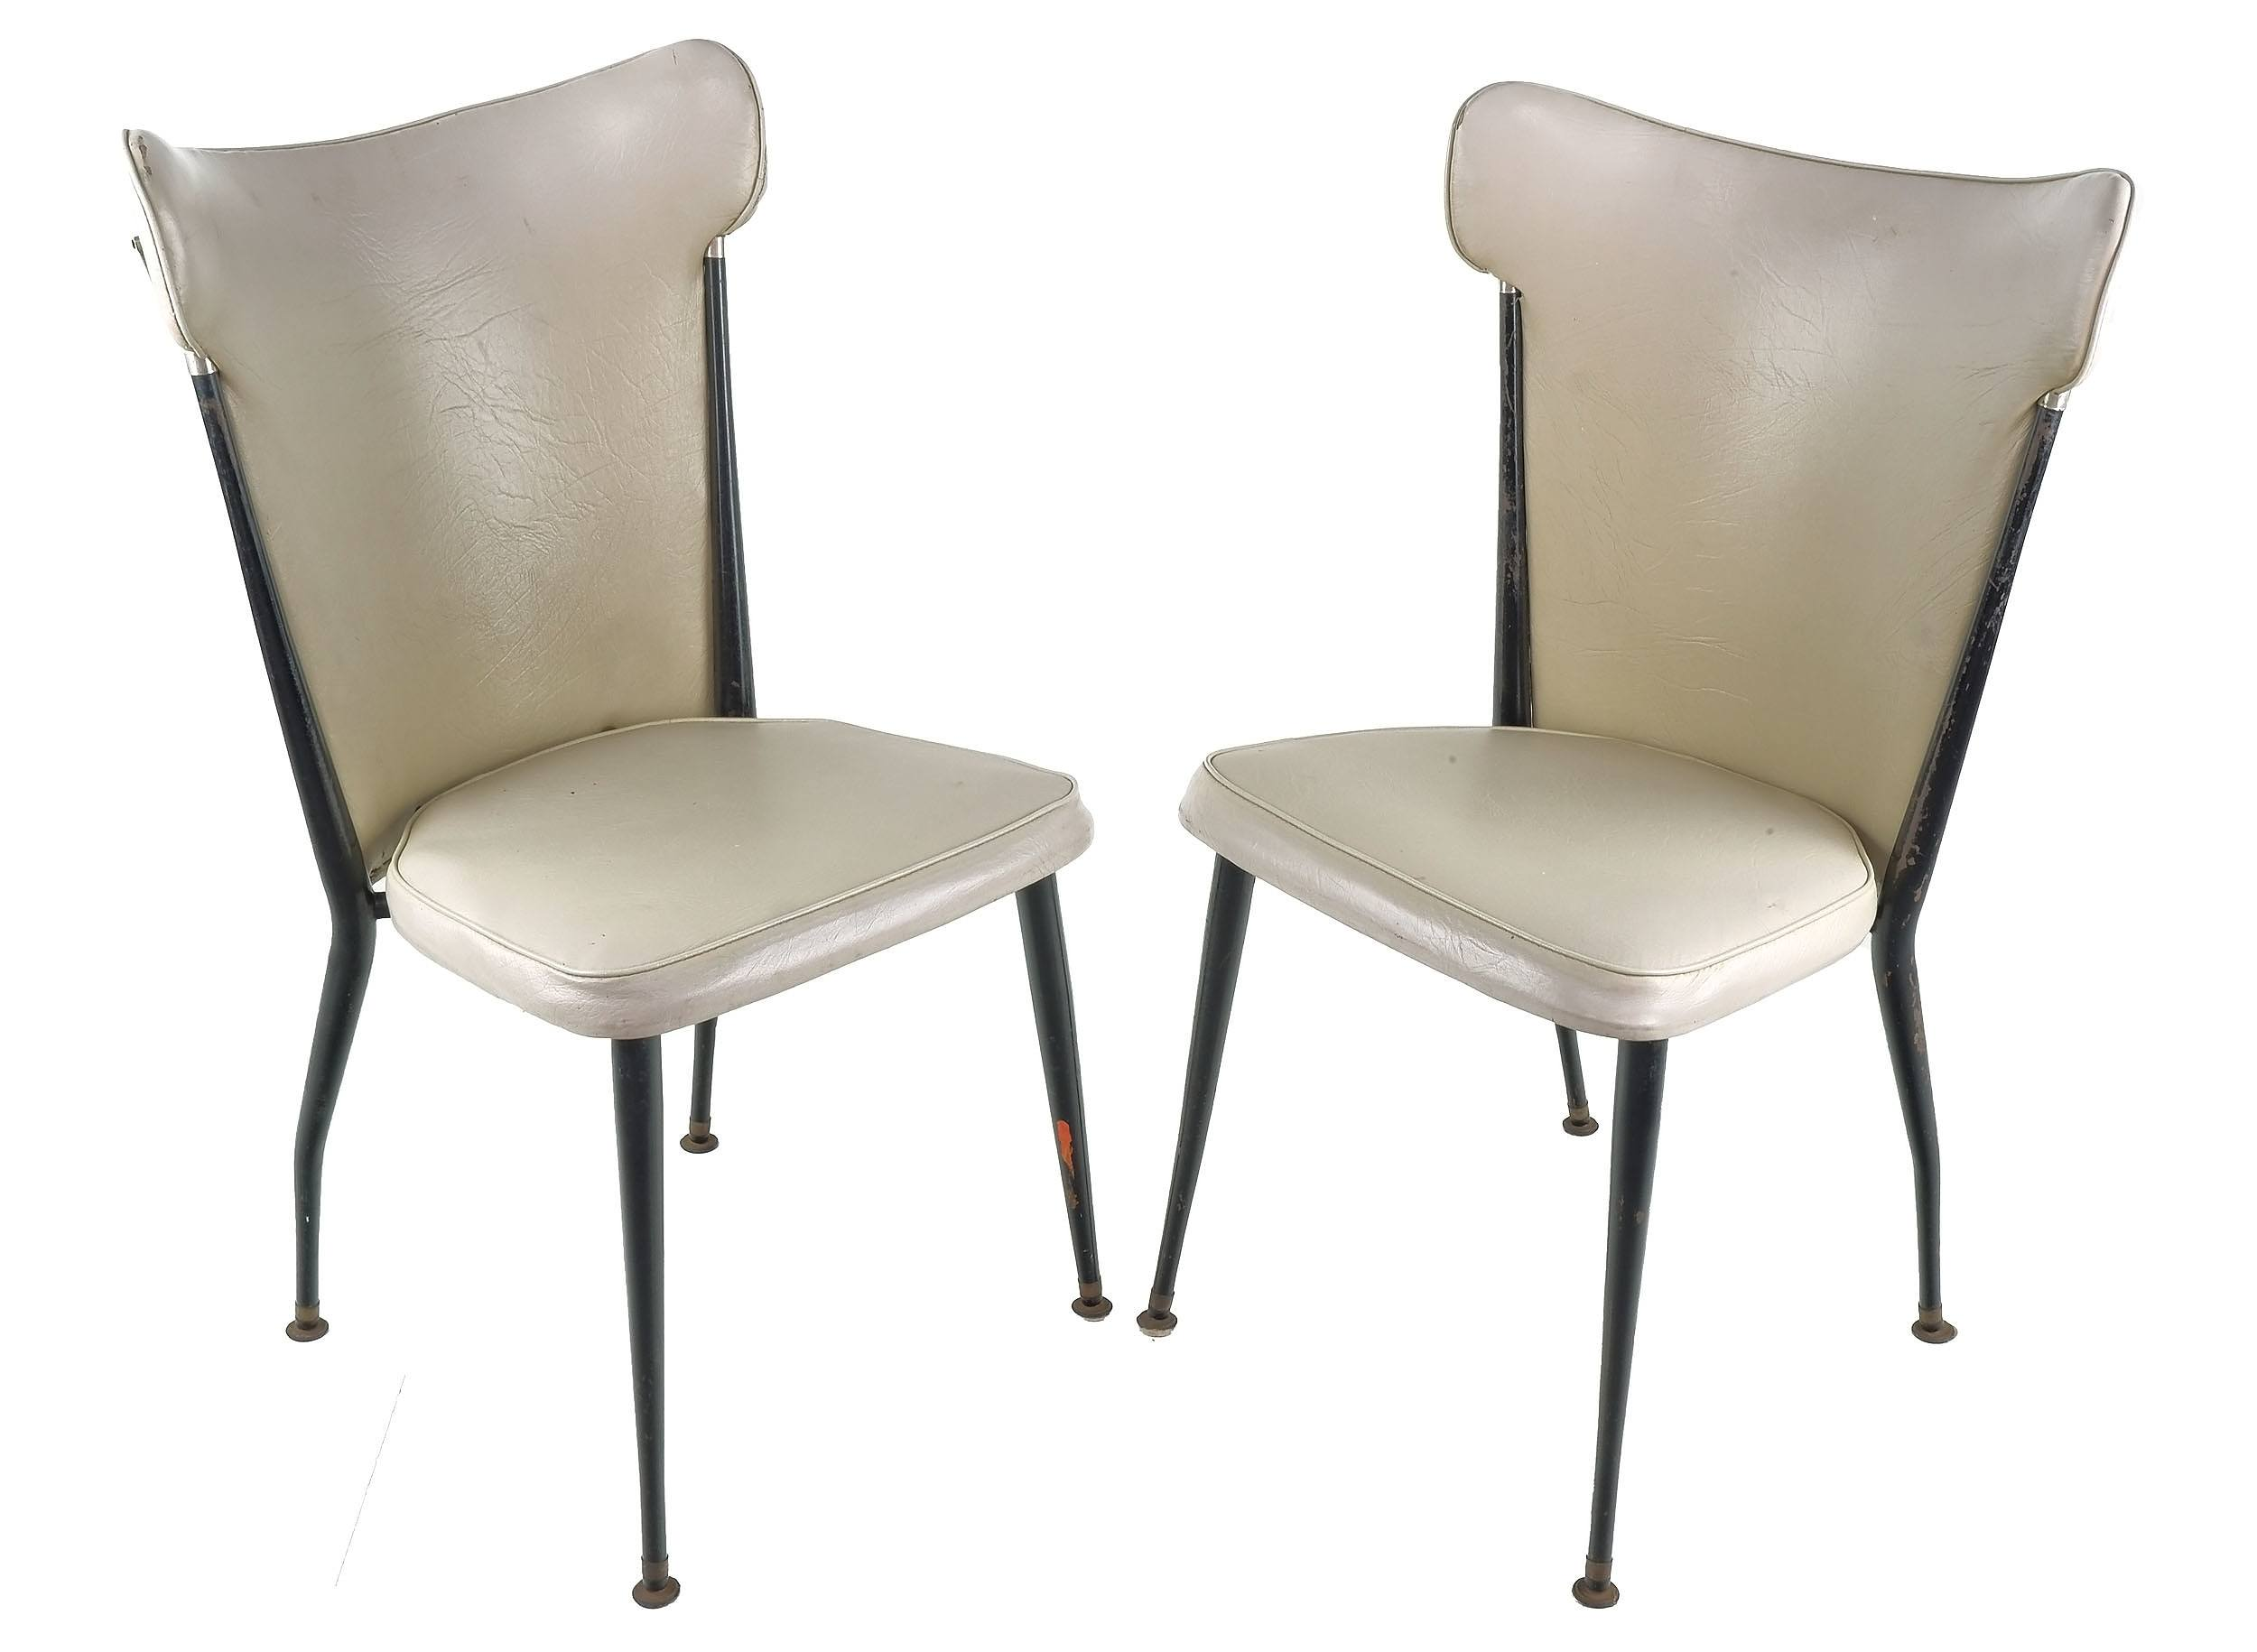 'Pair of High Back Aristoc Style Chairs, Circa 1970s'